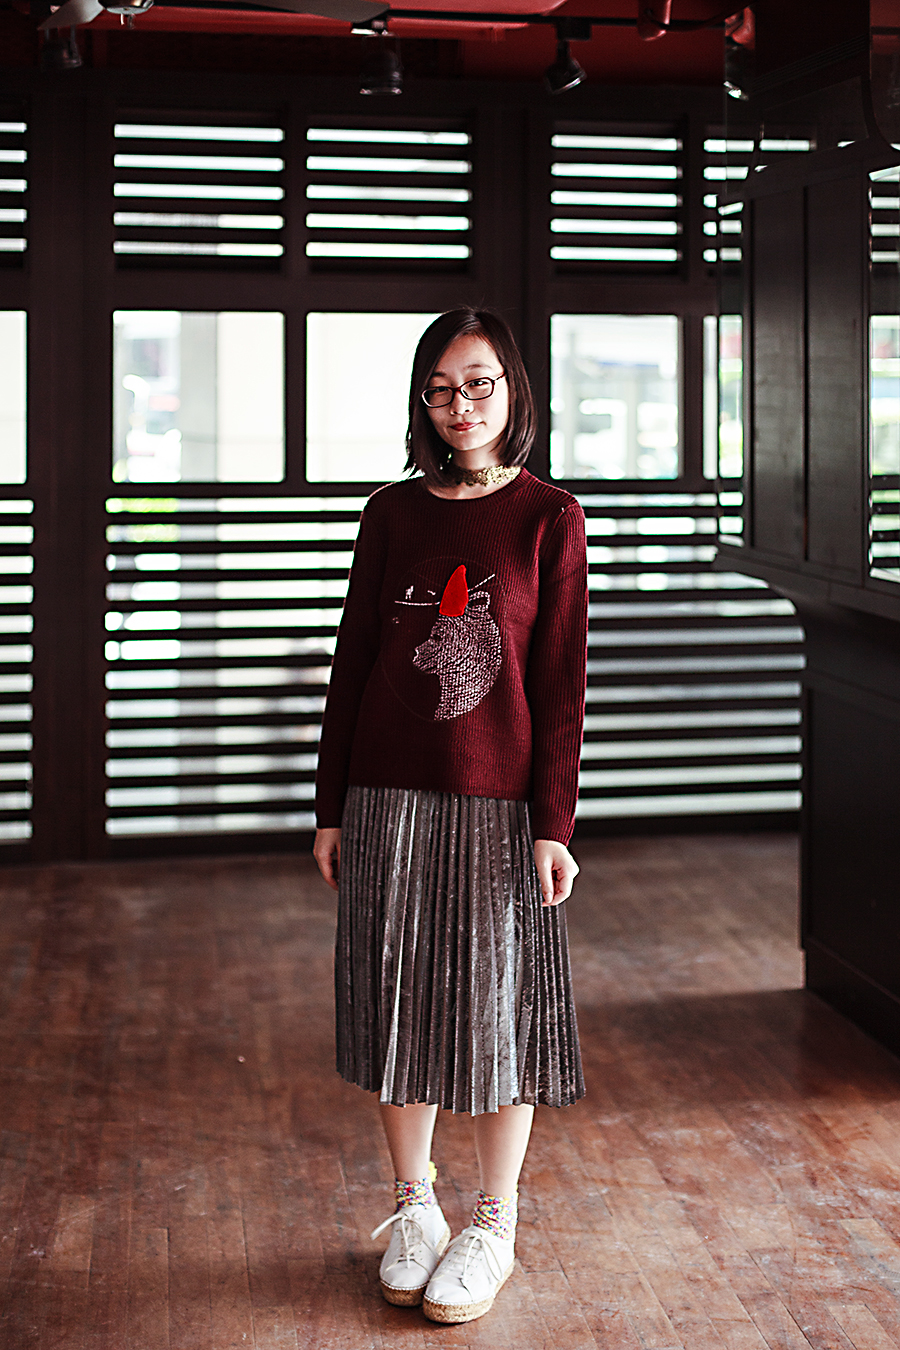 Zaful bear sweater, Shein silver pleated skirt, Zaful pompom socks, Kurt Geiger Lovebug white sneakers, Firmoo prescription glasses, Zaful gold metal lace choker necklace.